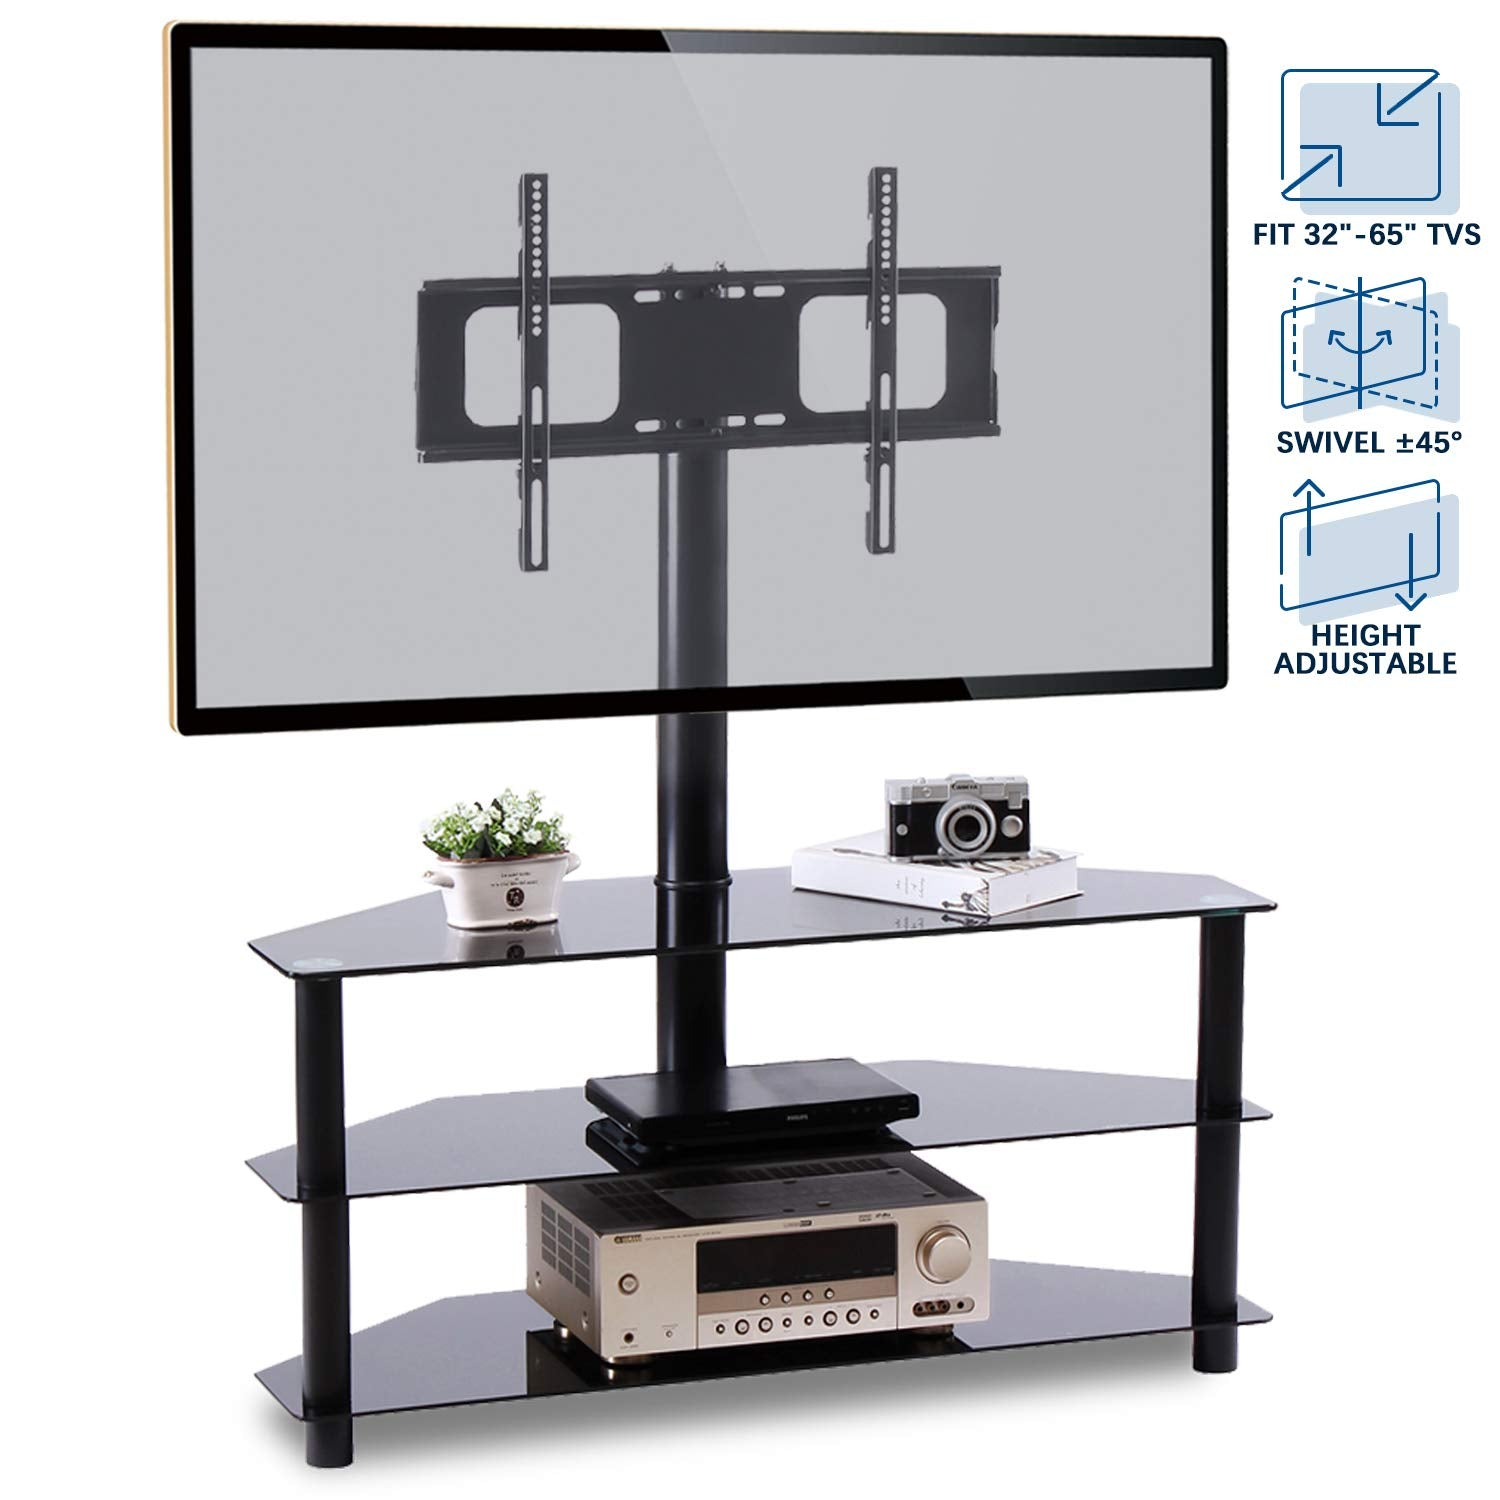 "Floor TV Stand with Swivel Mount for Most 32""-65"" LED, LCD, OLED and Plasma Flat or Curved Screen TVs, Height Adjustable 3-in-1 Entertainment"